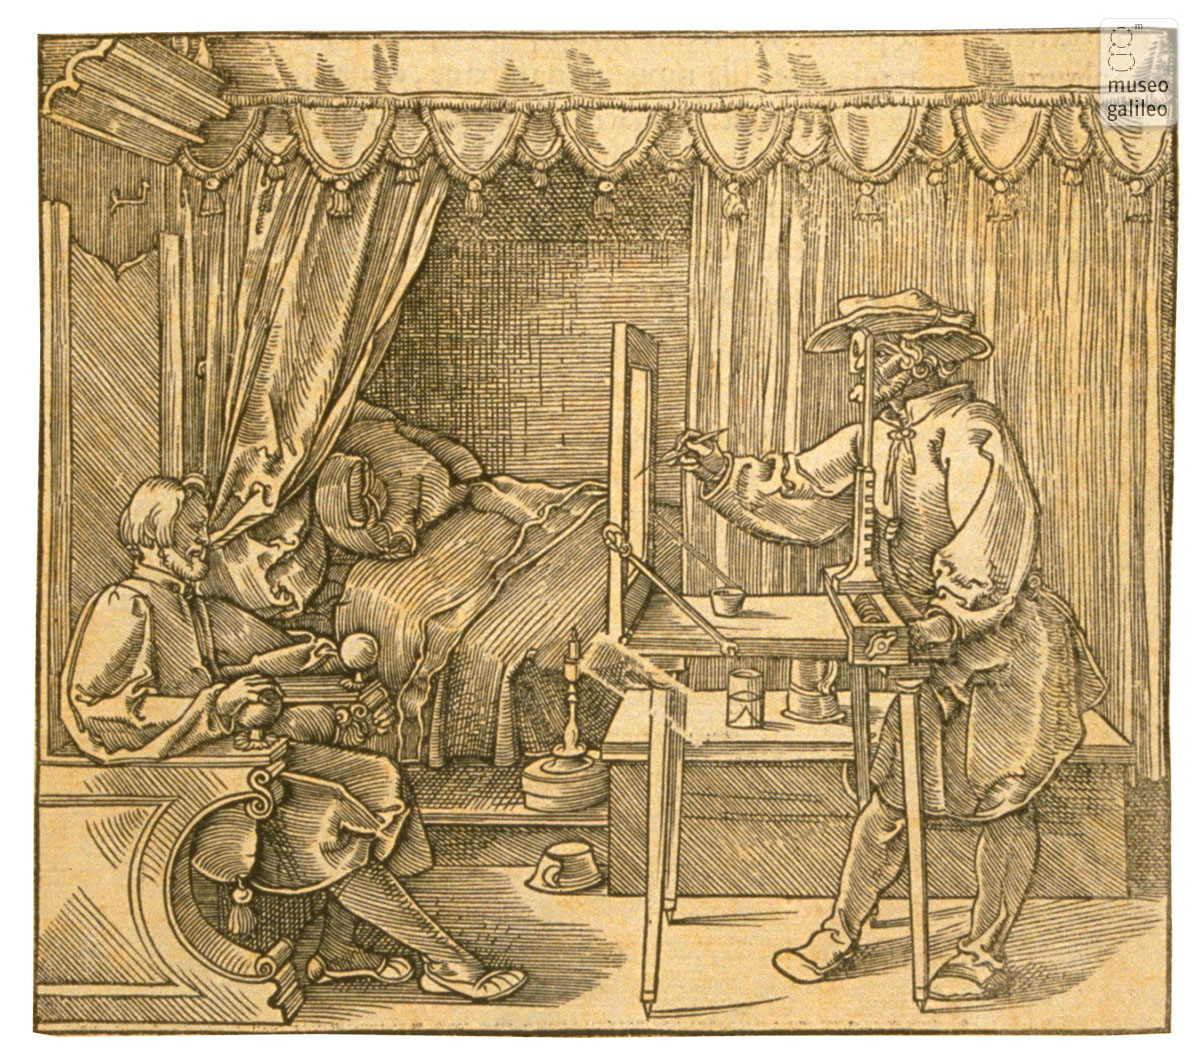 Instrument for making portraits (1532)